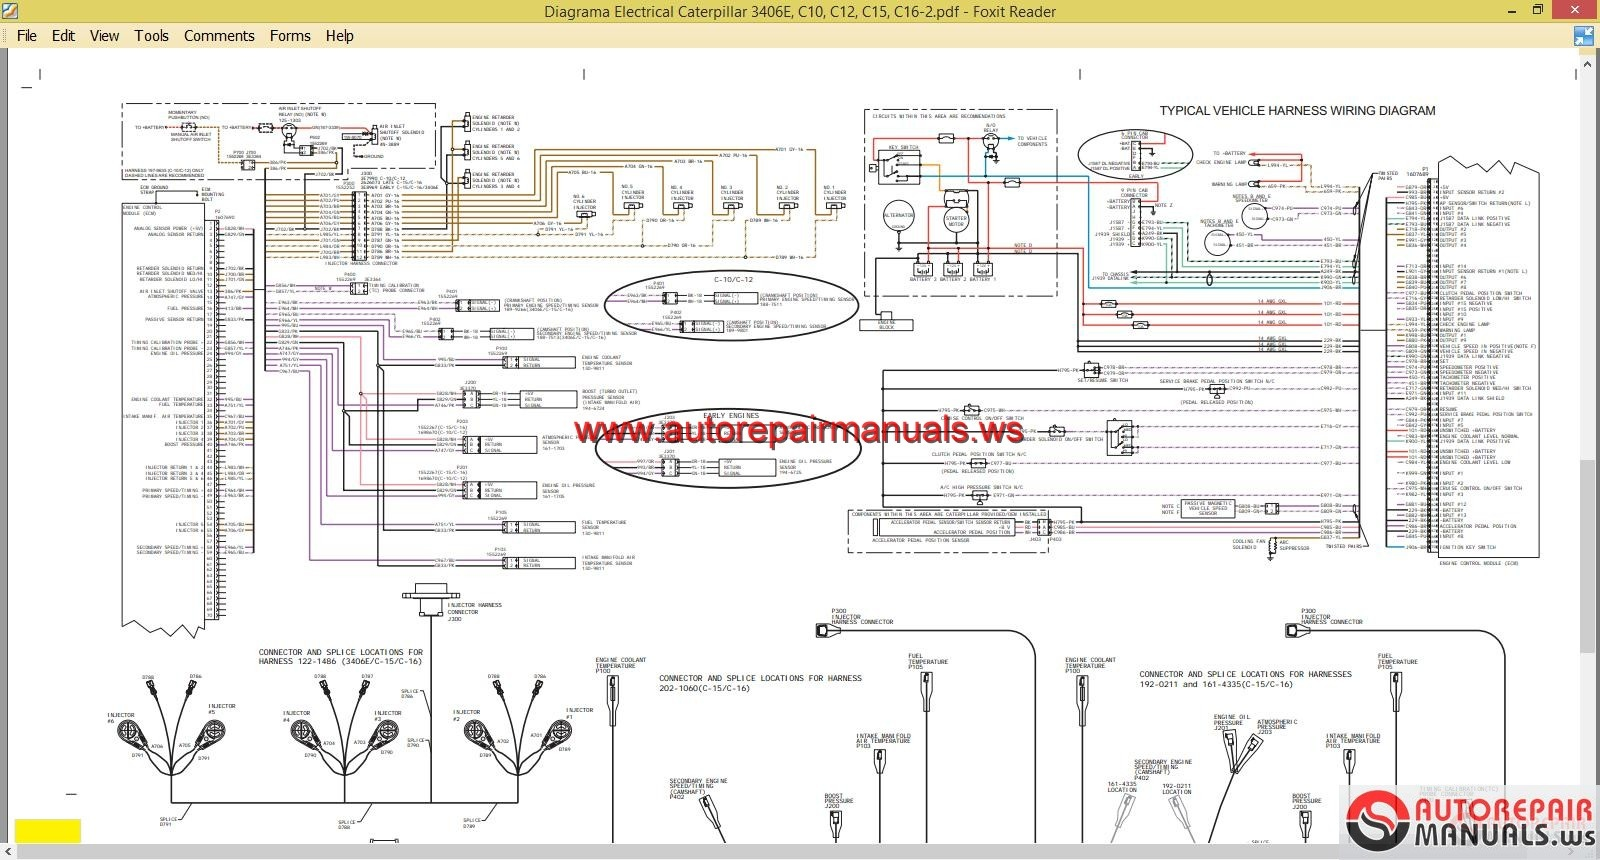 C15 Wiring Harness Diagram Reveolution Of Cat C12 Ecm Pictures Www Parts Starter For Caterpillar Dpf System